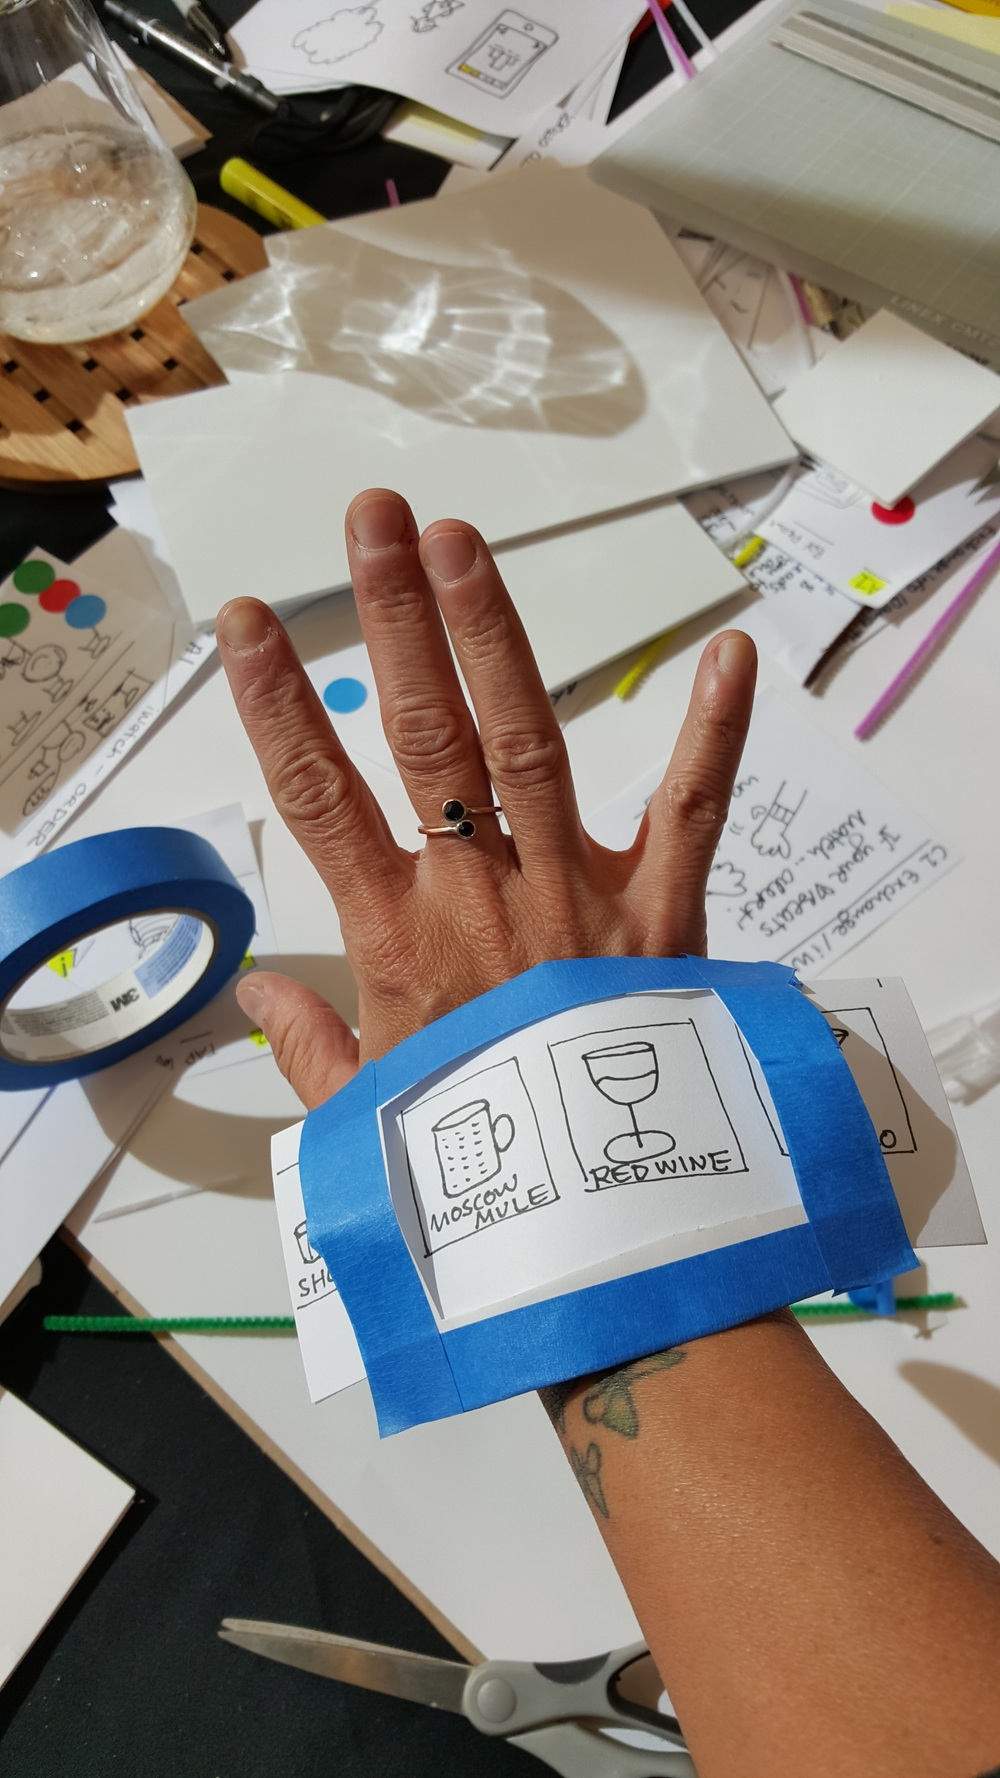 Rapid prototyping often include creating things from paper. The point is to quickly understand if an idea is a yey or a ney.